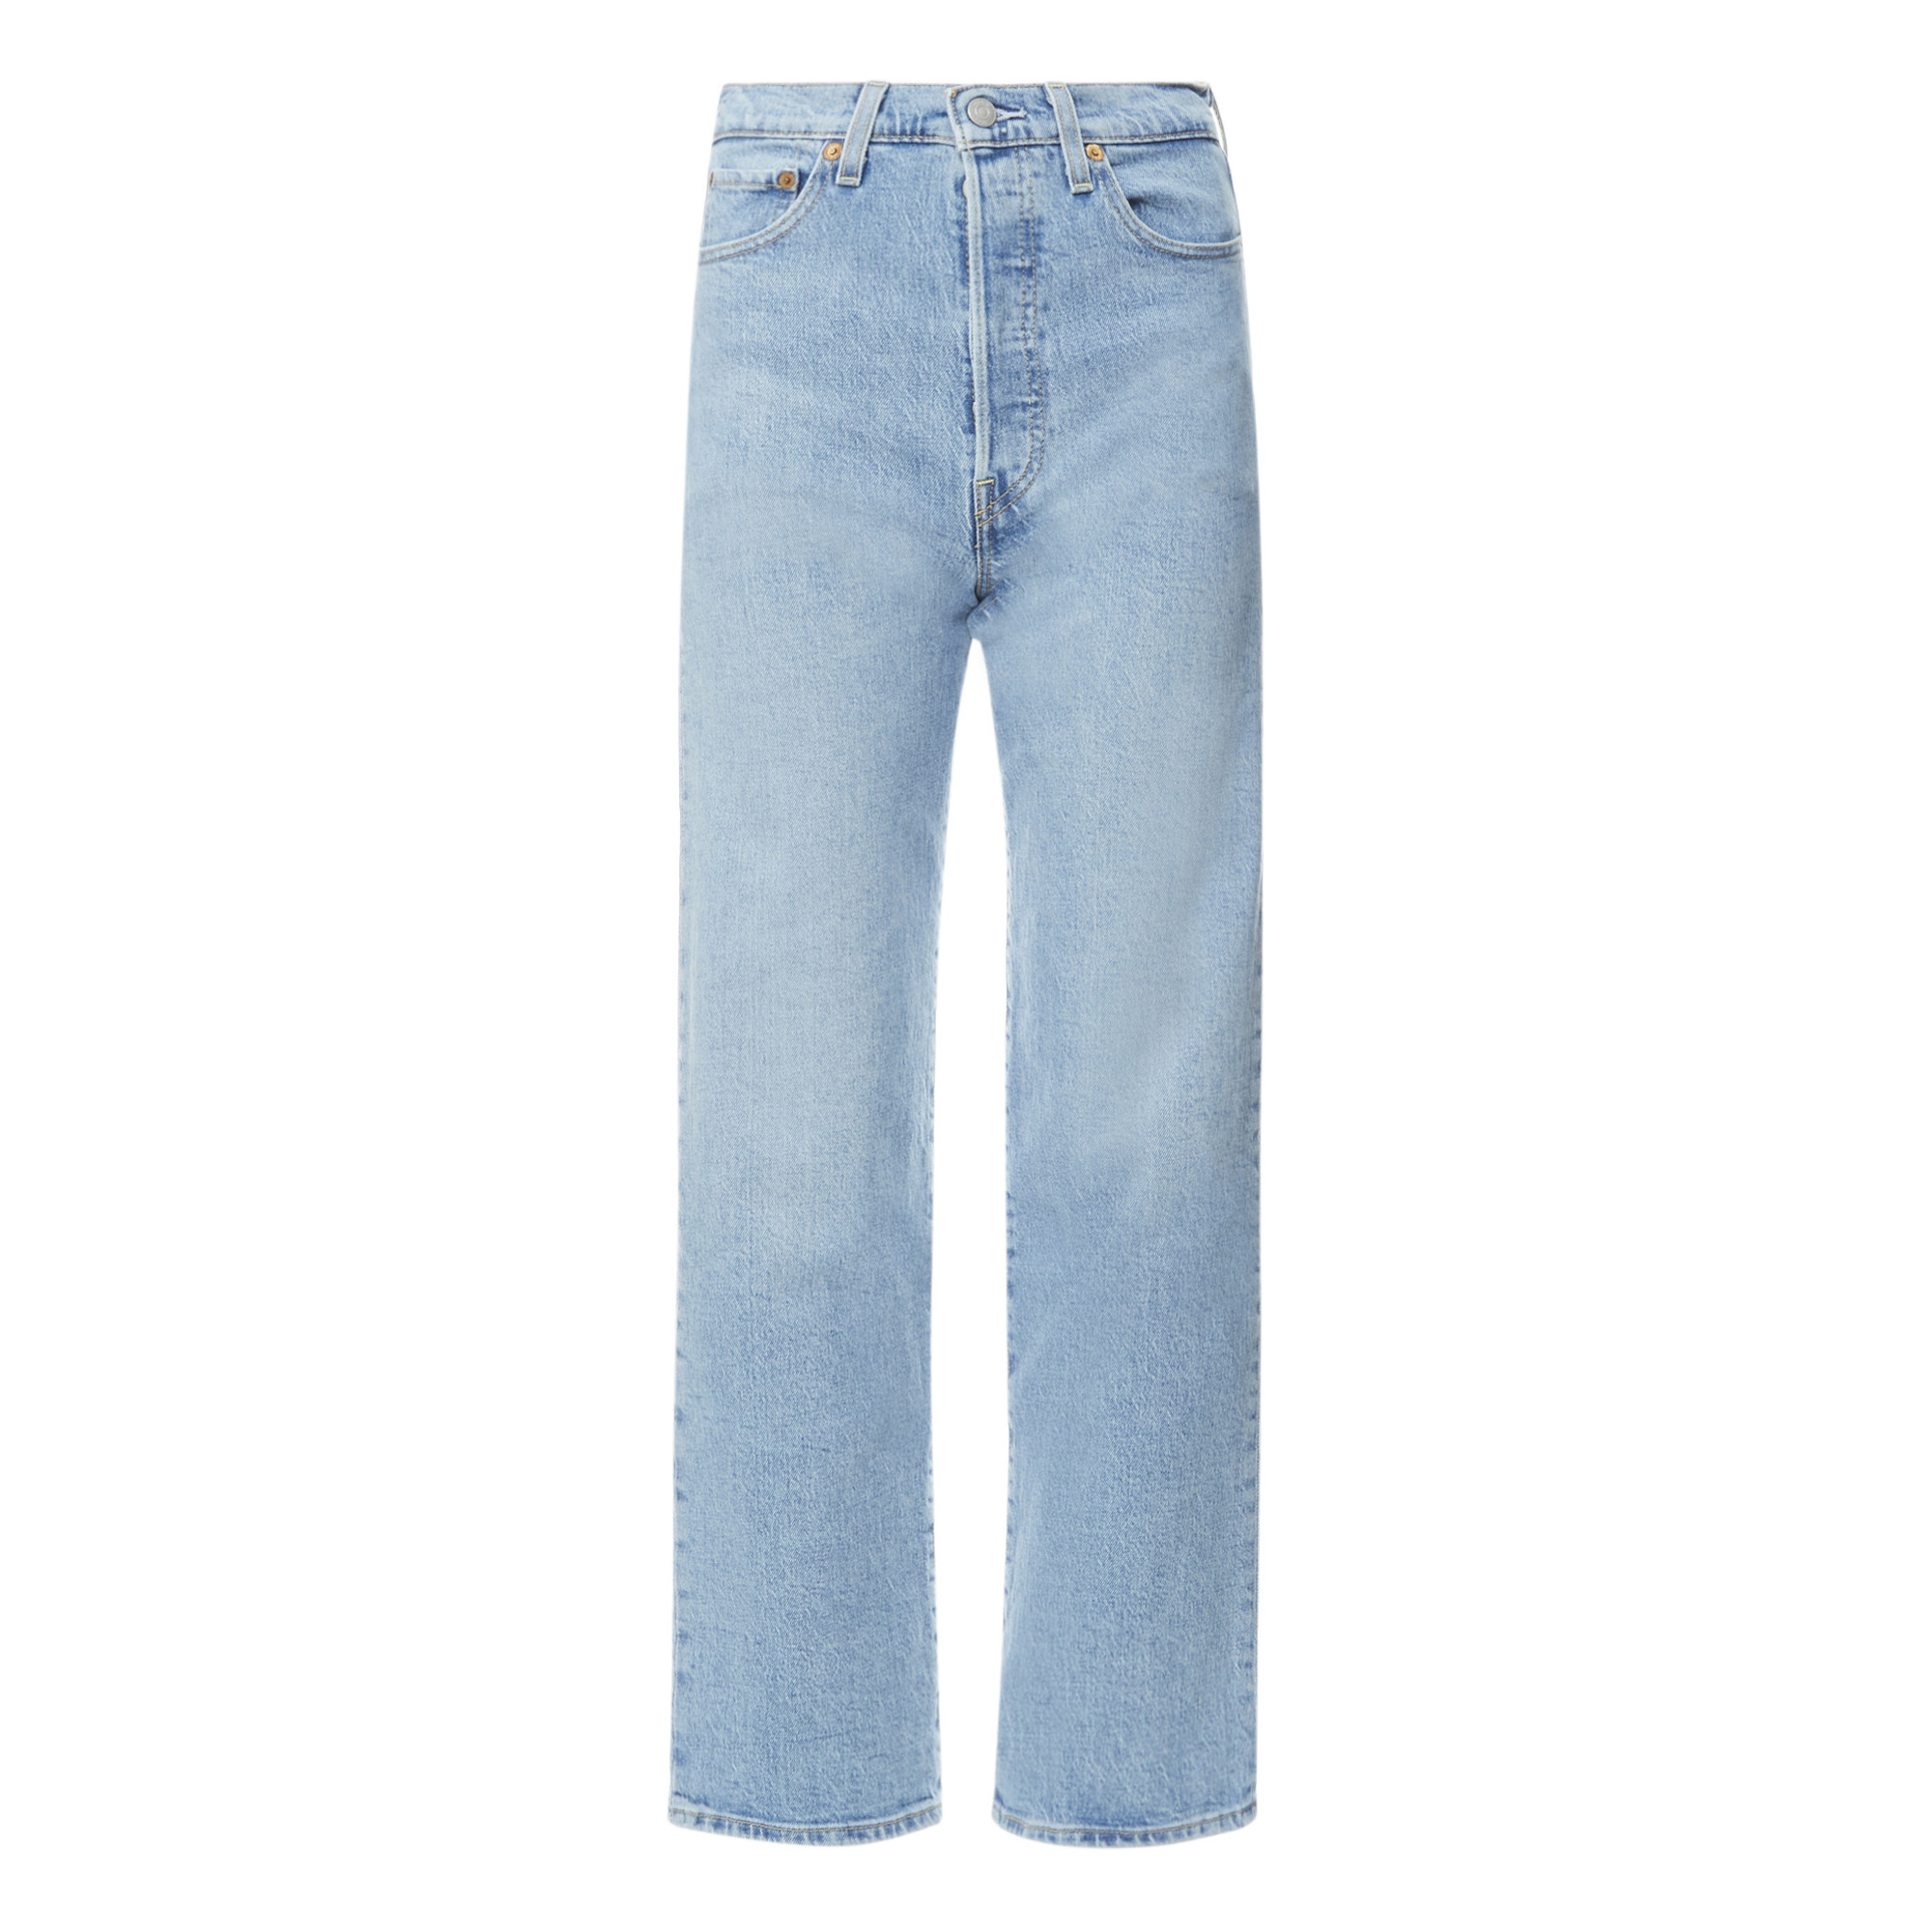 Jean Levi's Ribcage Straight Ankle